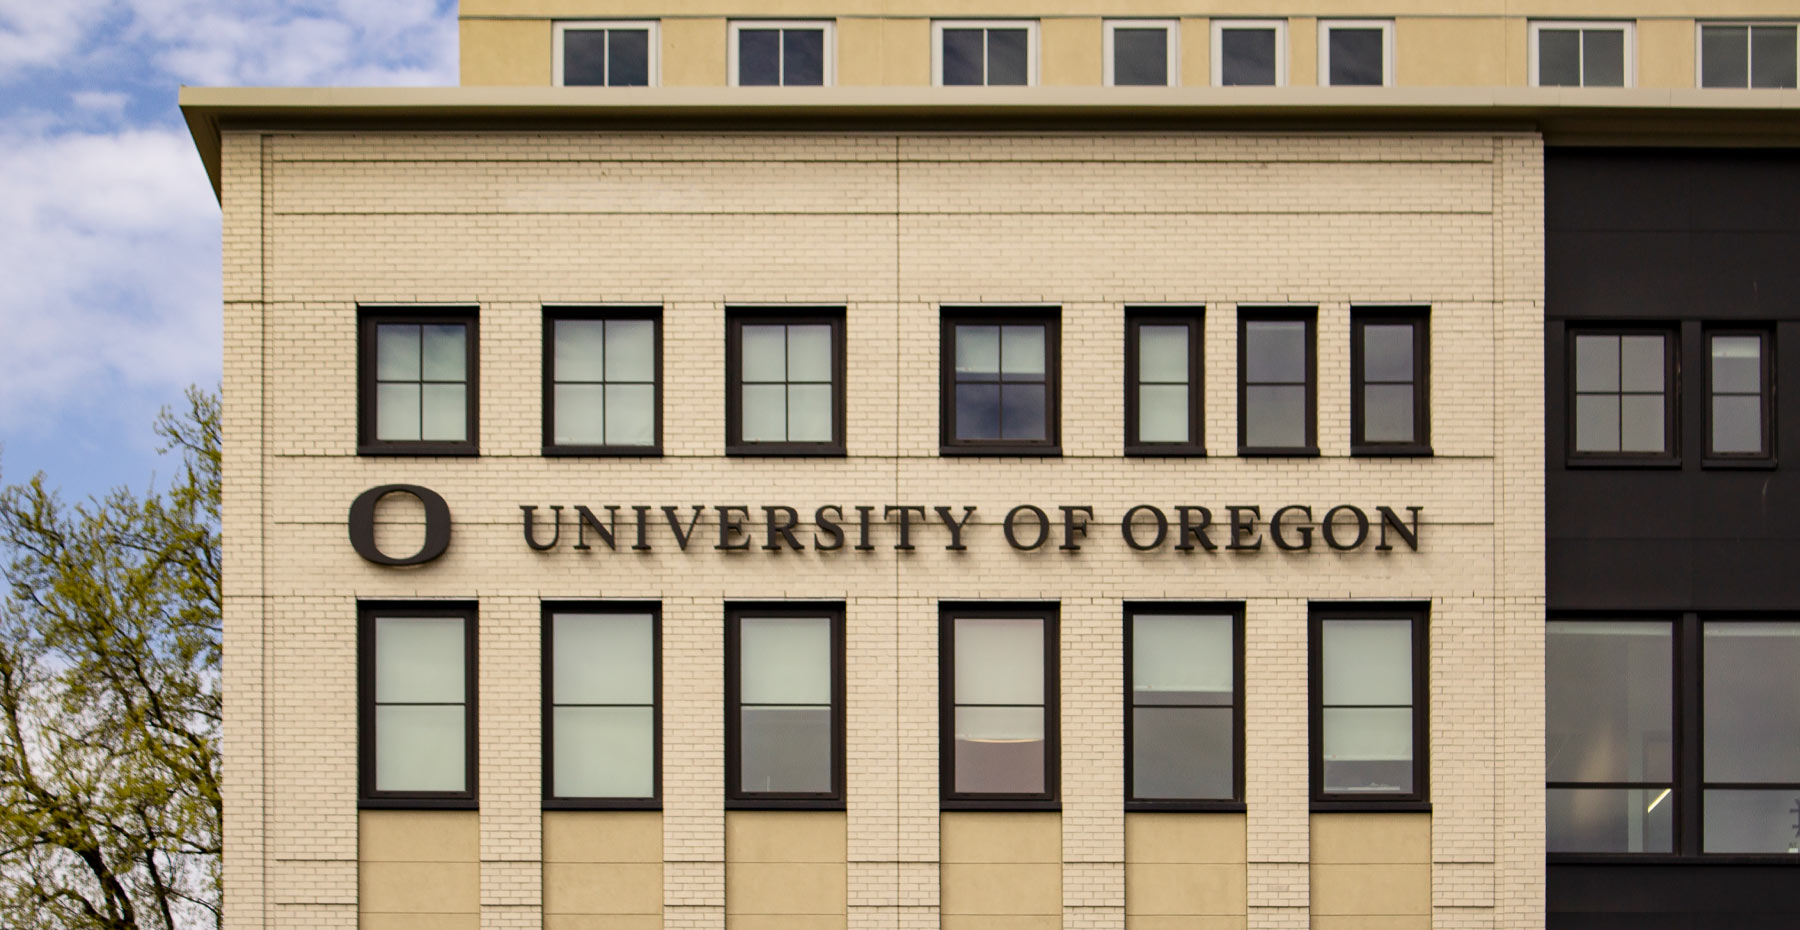 UofO-Building-Sign-Overview.jpg